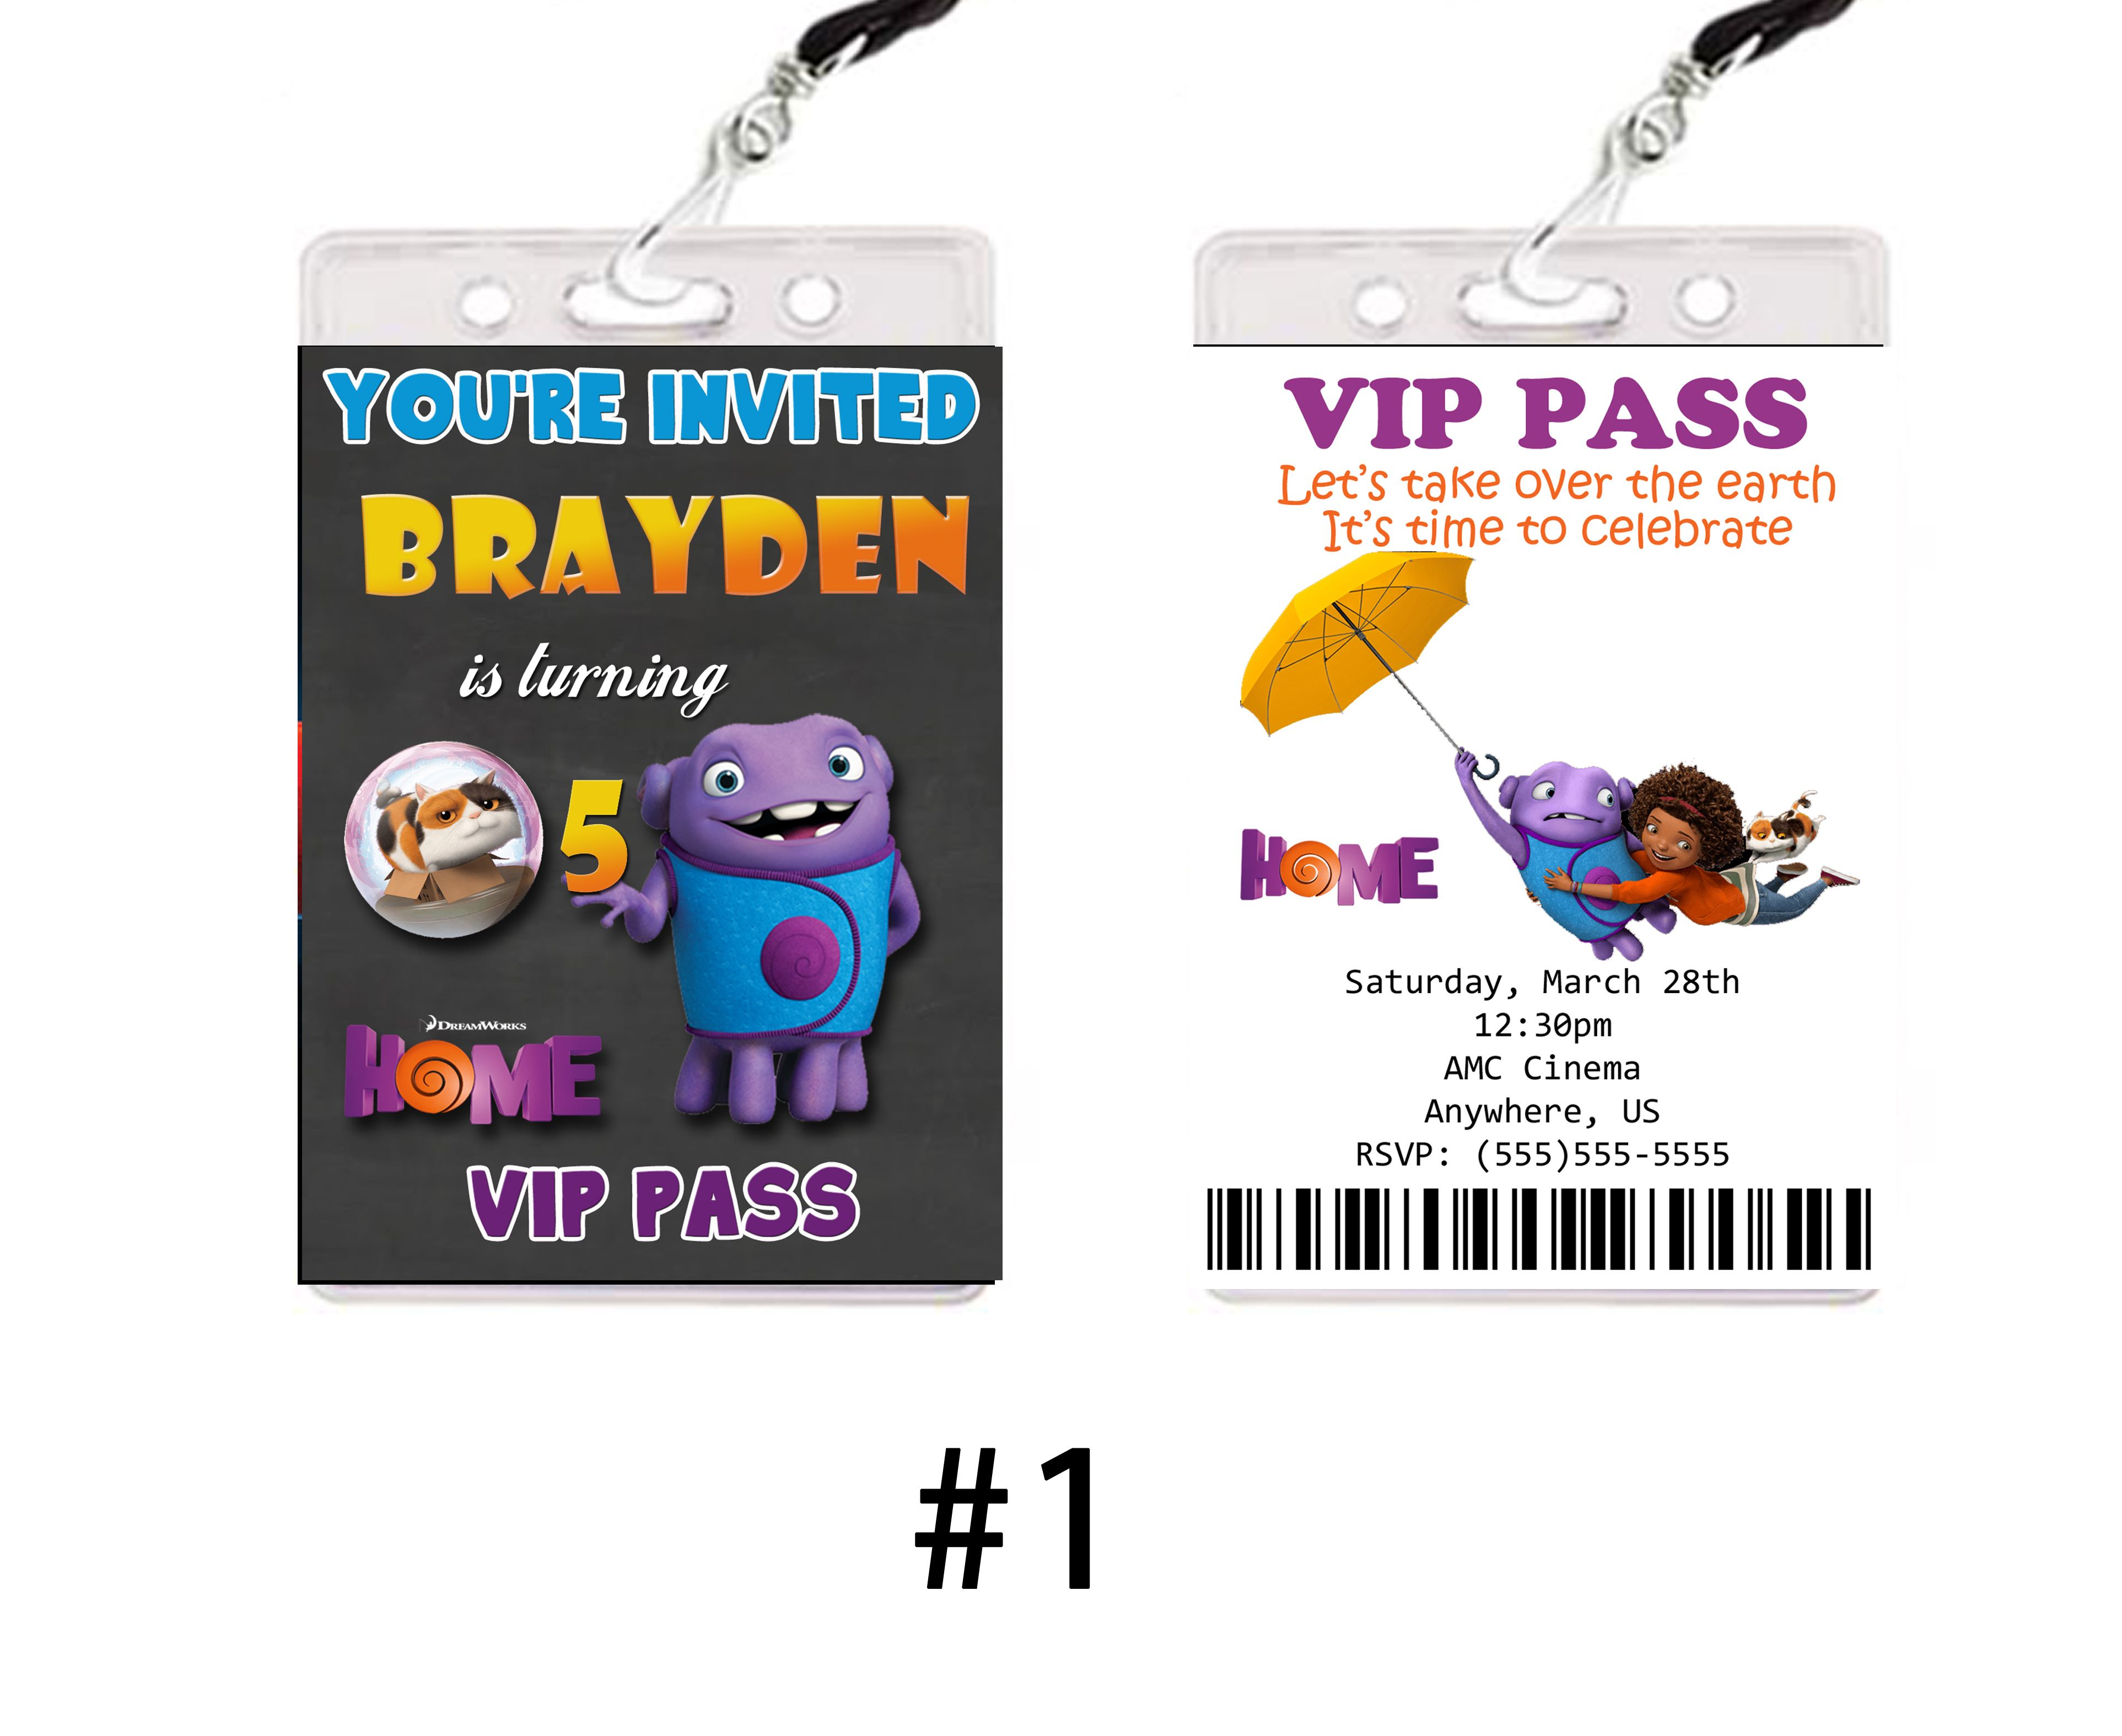 Dreamworks Home Movie Birthday Invitations VIP passes or party